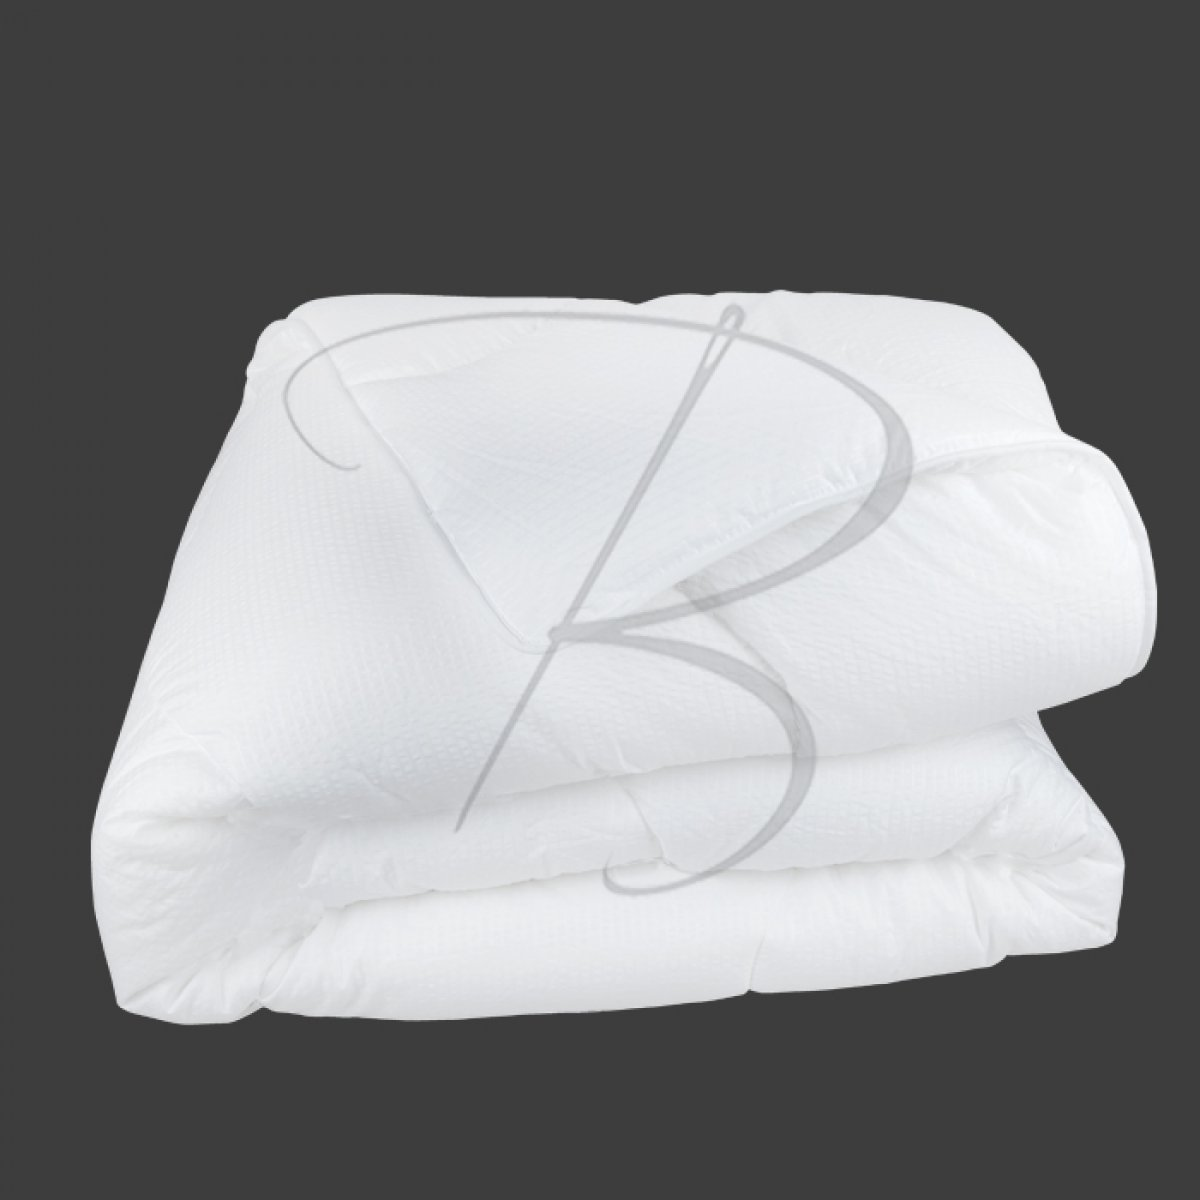 COMETE synthetic comforter - 450g/m² - 200 x 200